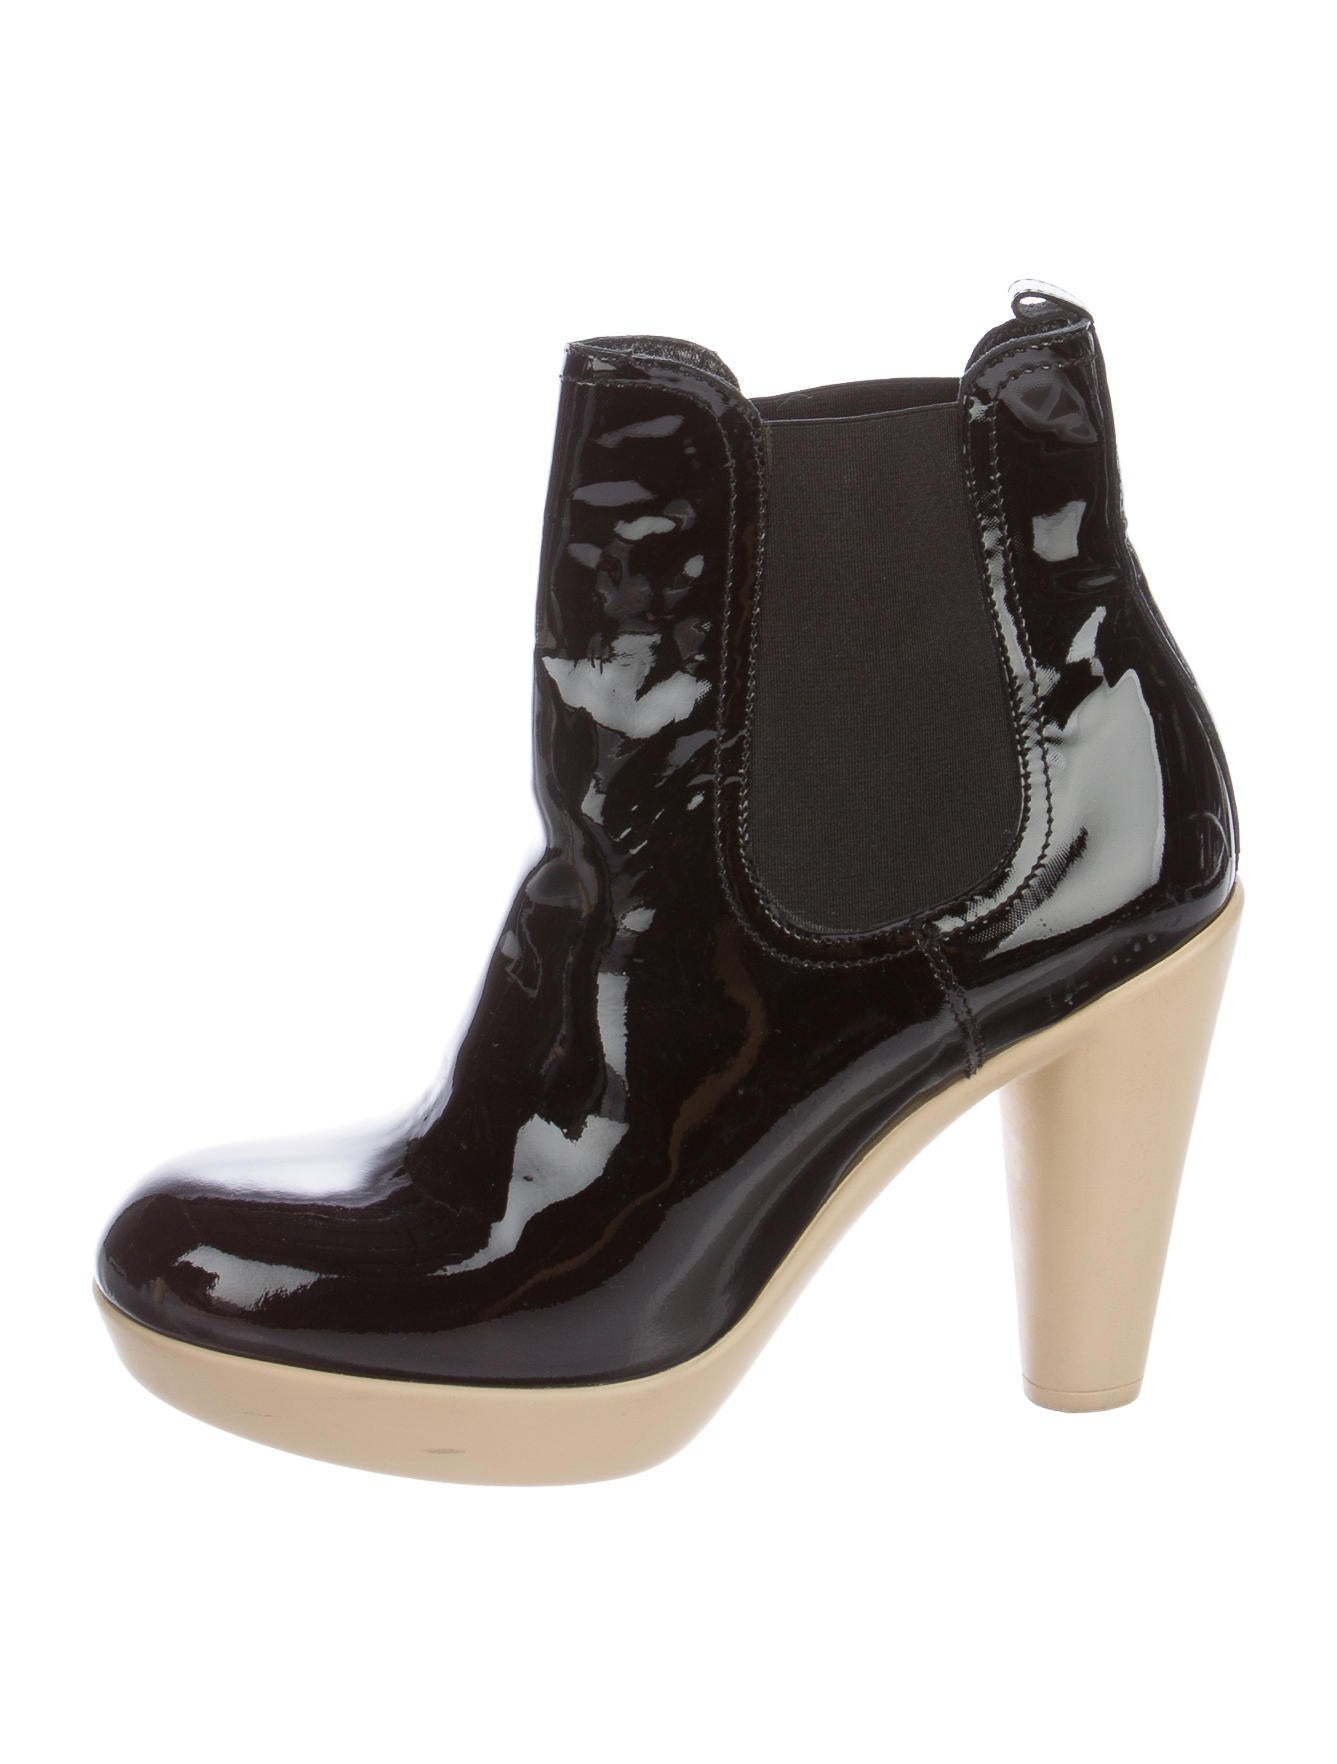 Lanvin Patent Leather Ankle Booties - Shoes